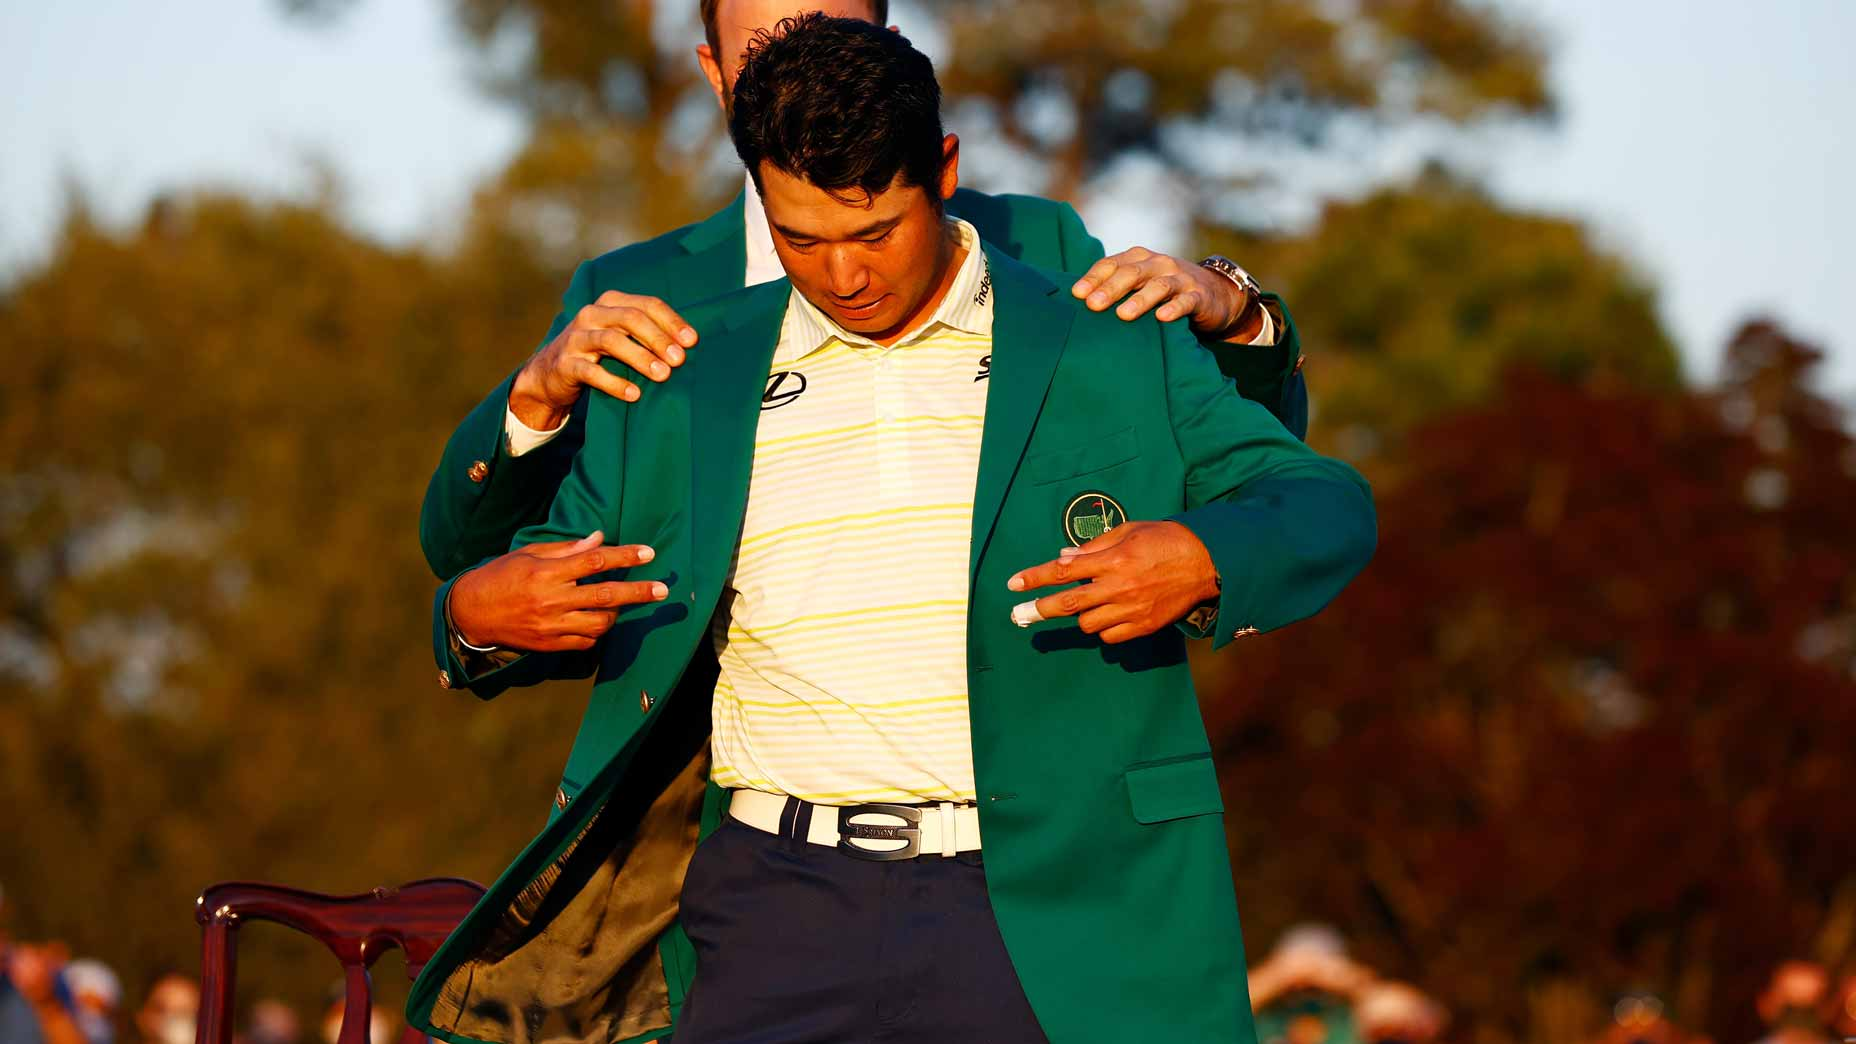 hideki matsuyama slips on the green jacket.